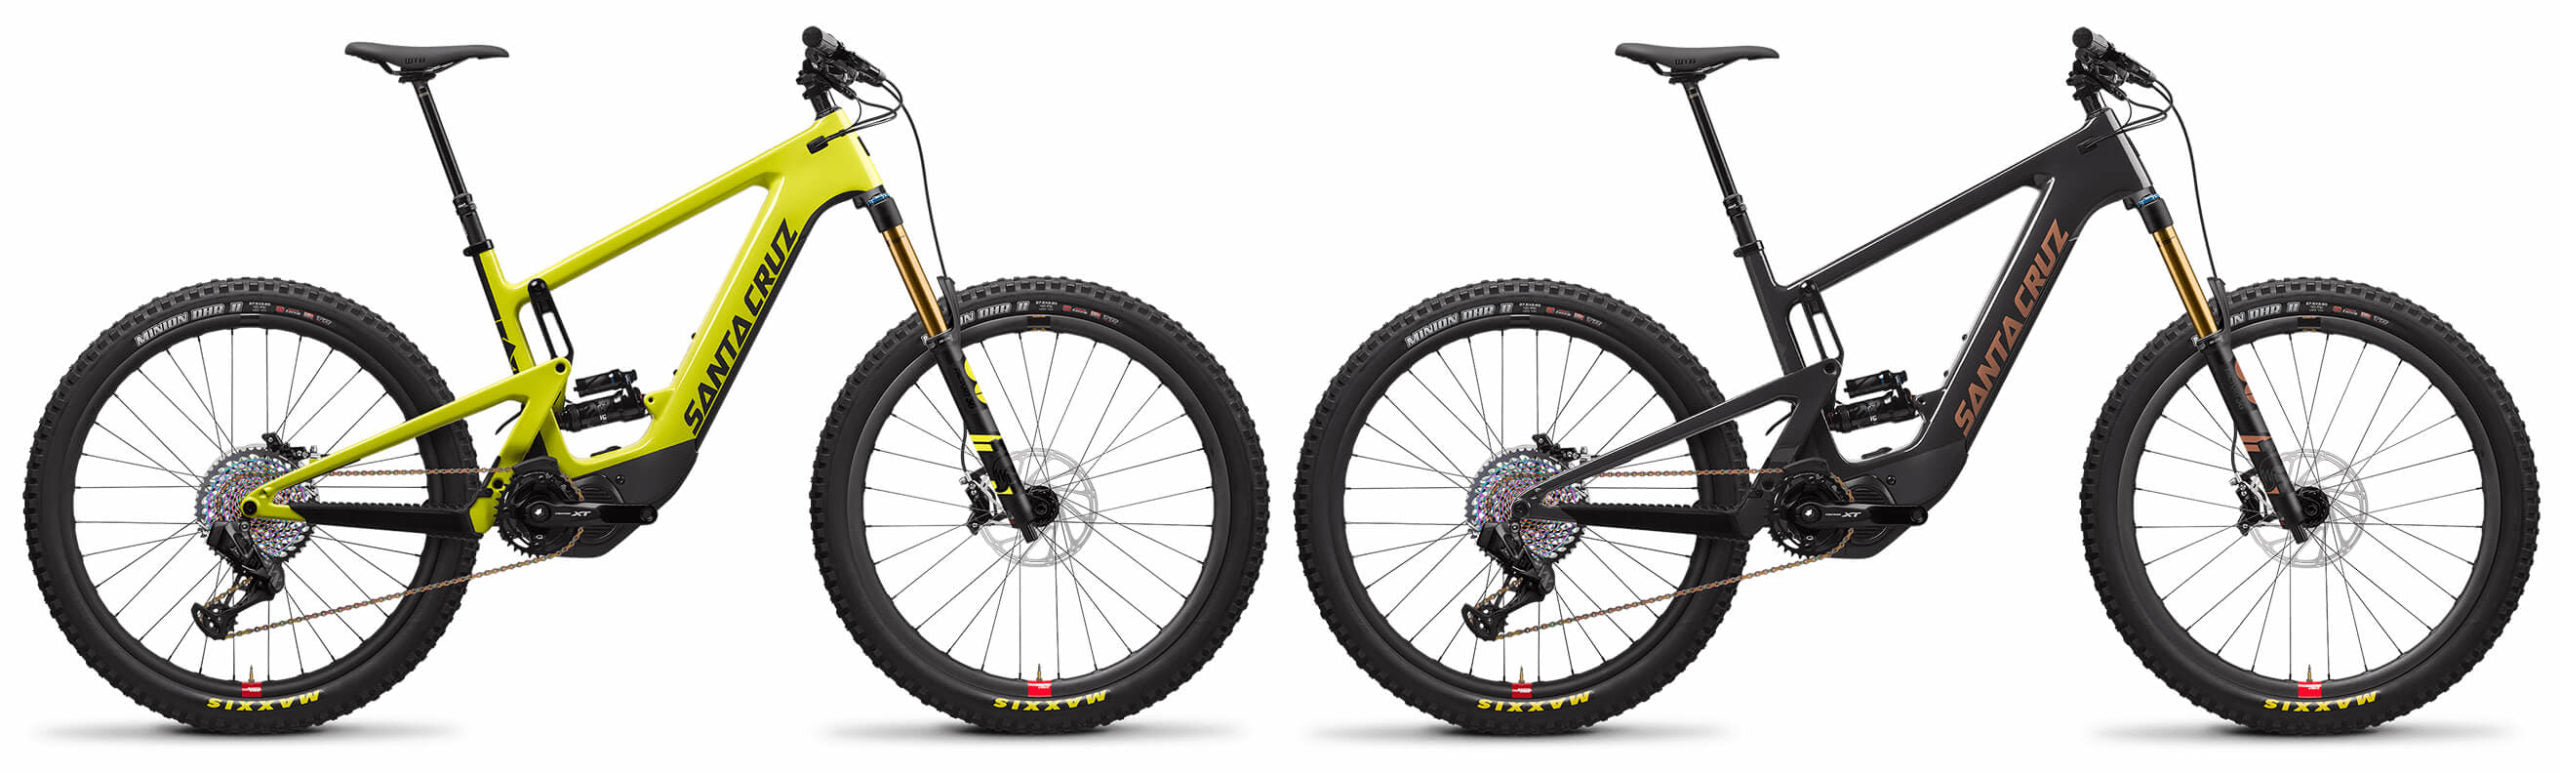 2020 Santa Cruz Heckler Electric Mountain Bike